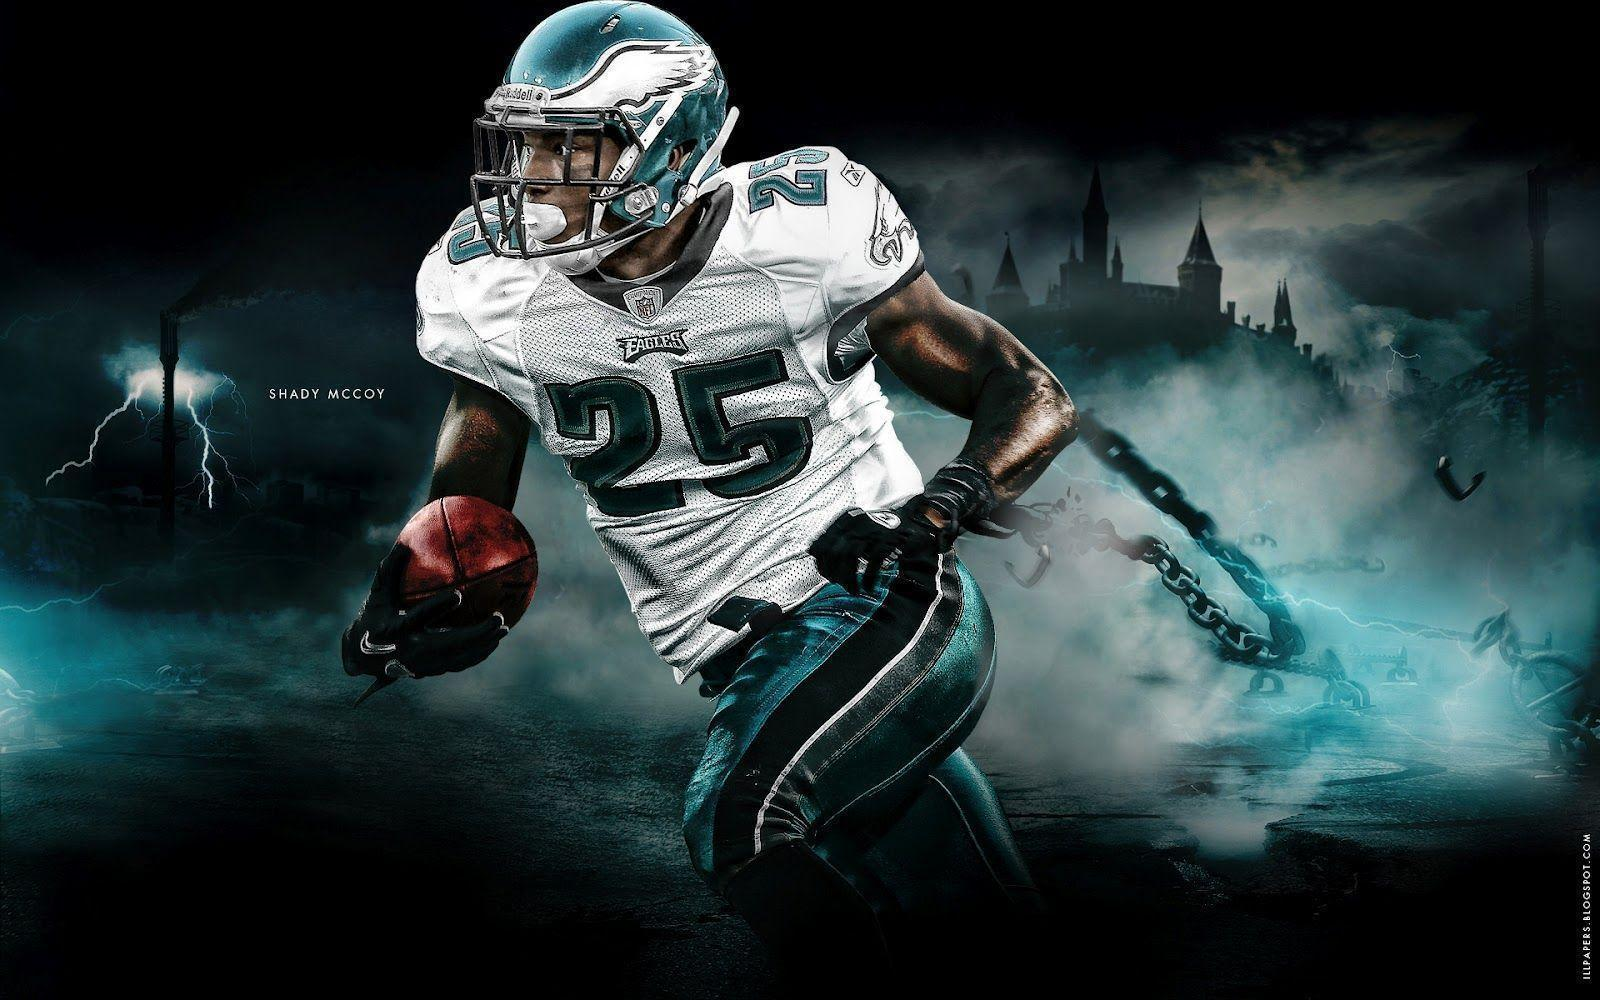 Nfl Football Players Wallpaper: Philadelphia Eagles Wallpapers